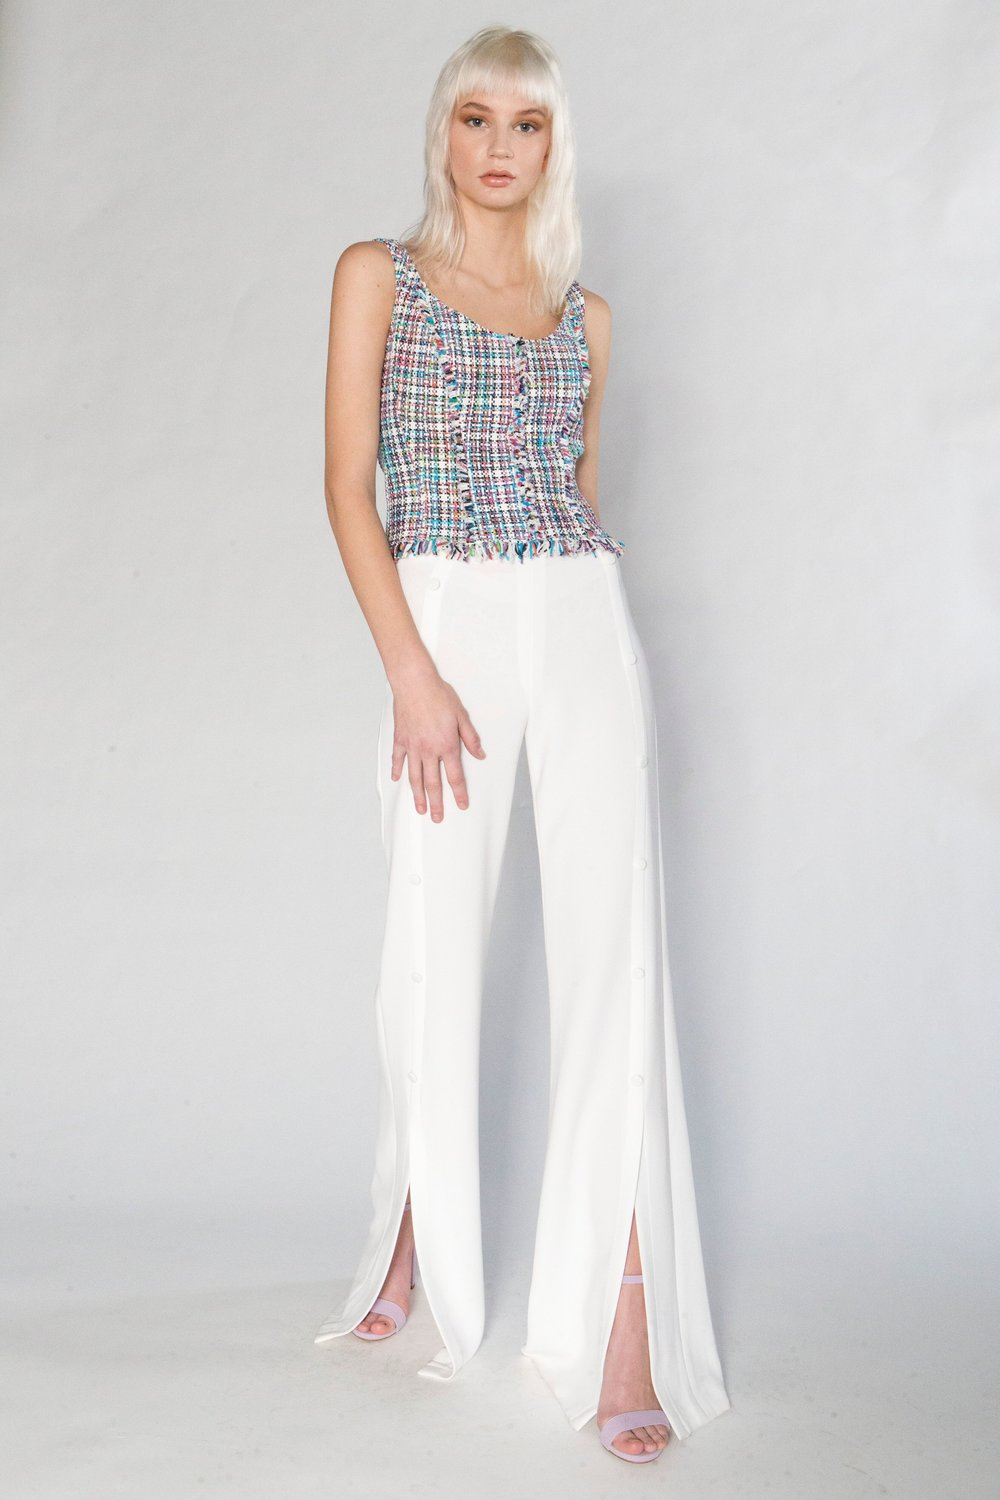 Summer Tweed Camisole and Split Pant w/Buttons, stretch crepe